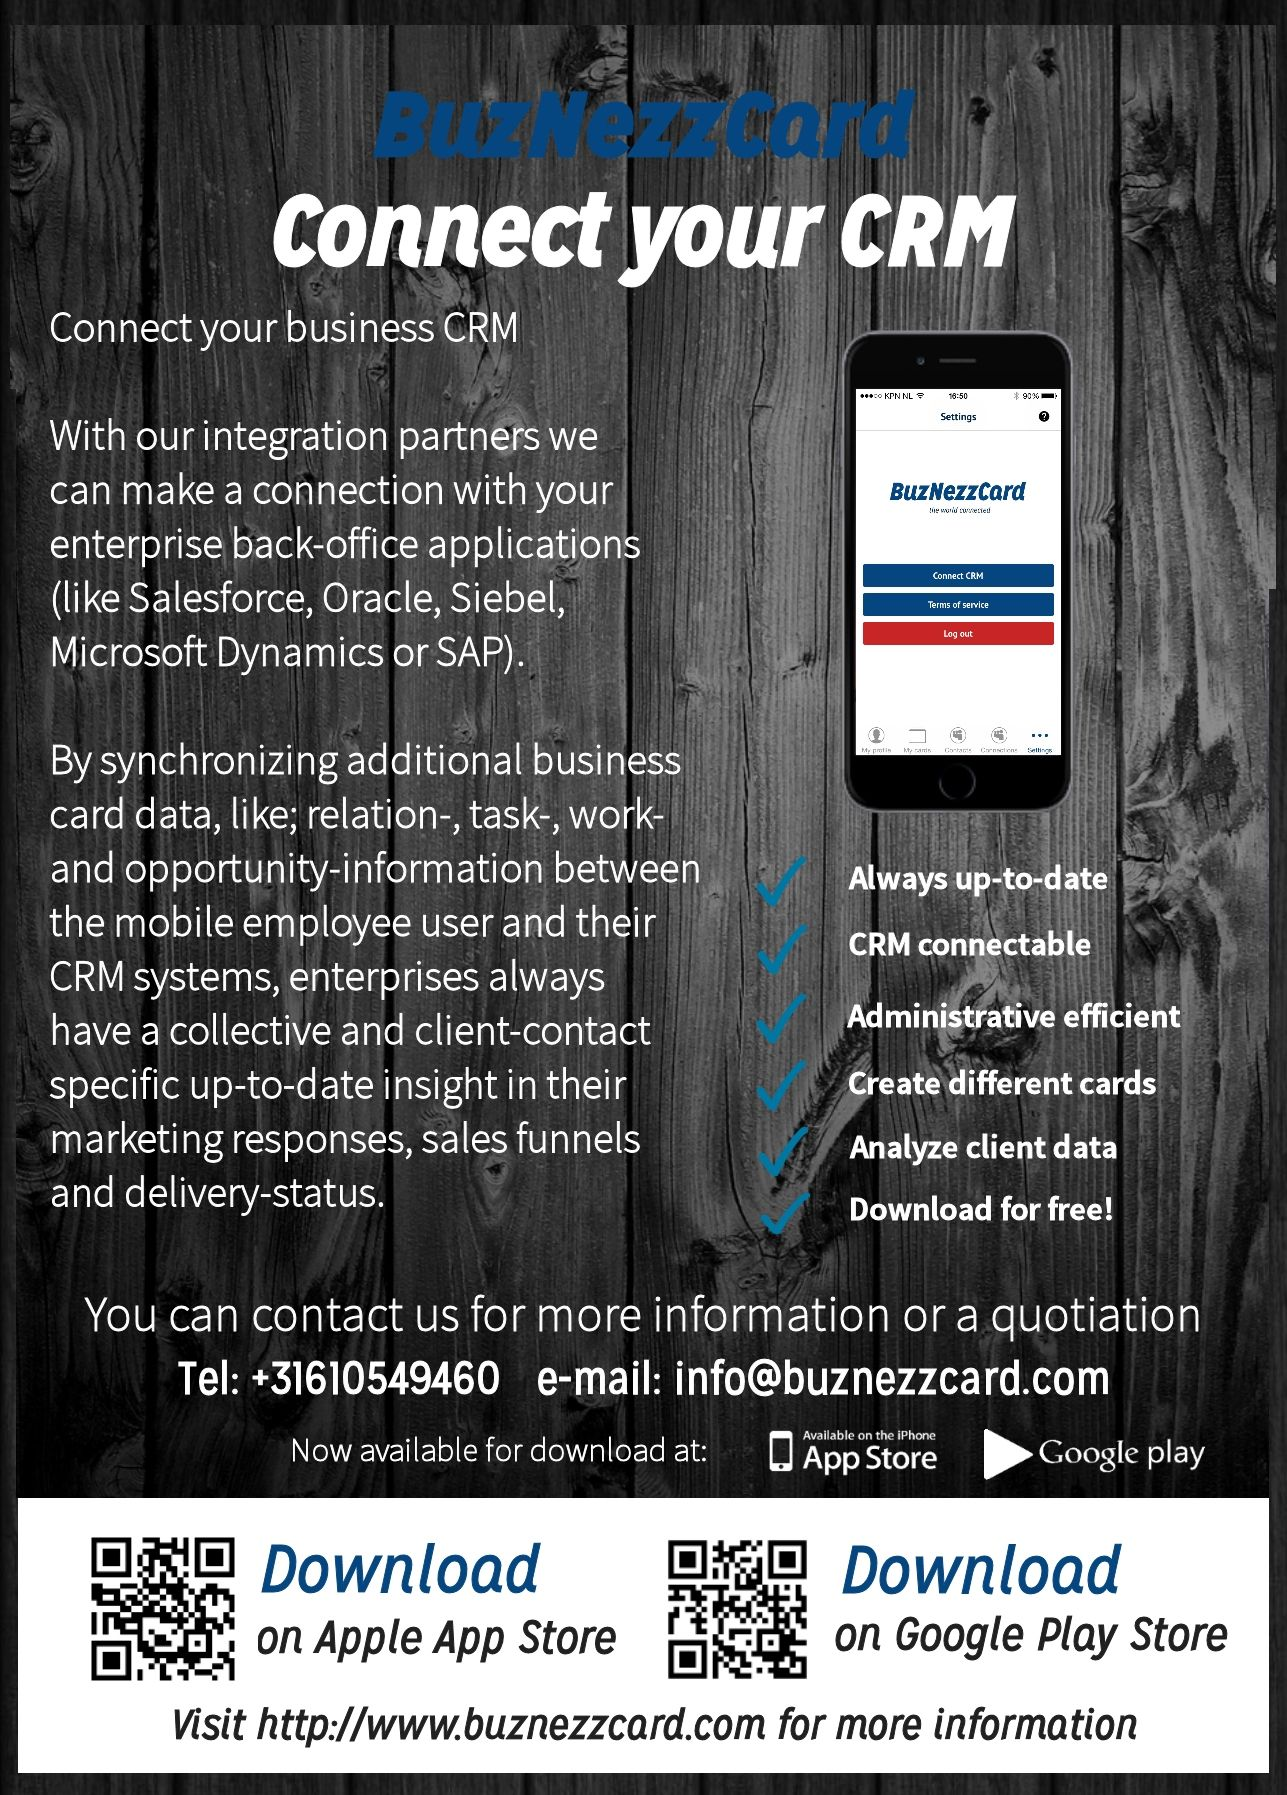 Flyer backside about our businesscard app with features, where to ...